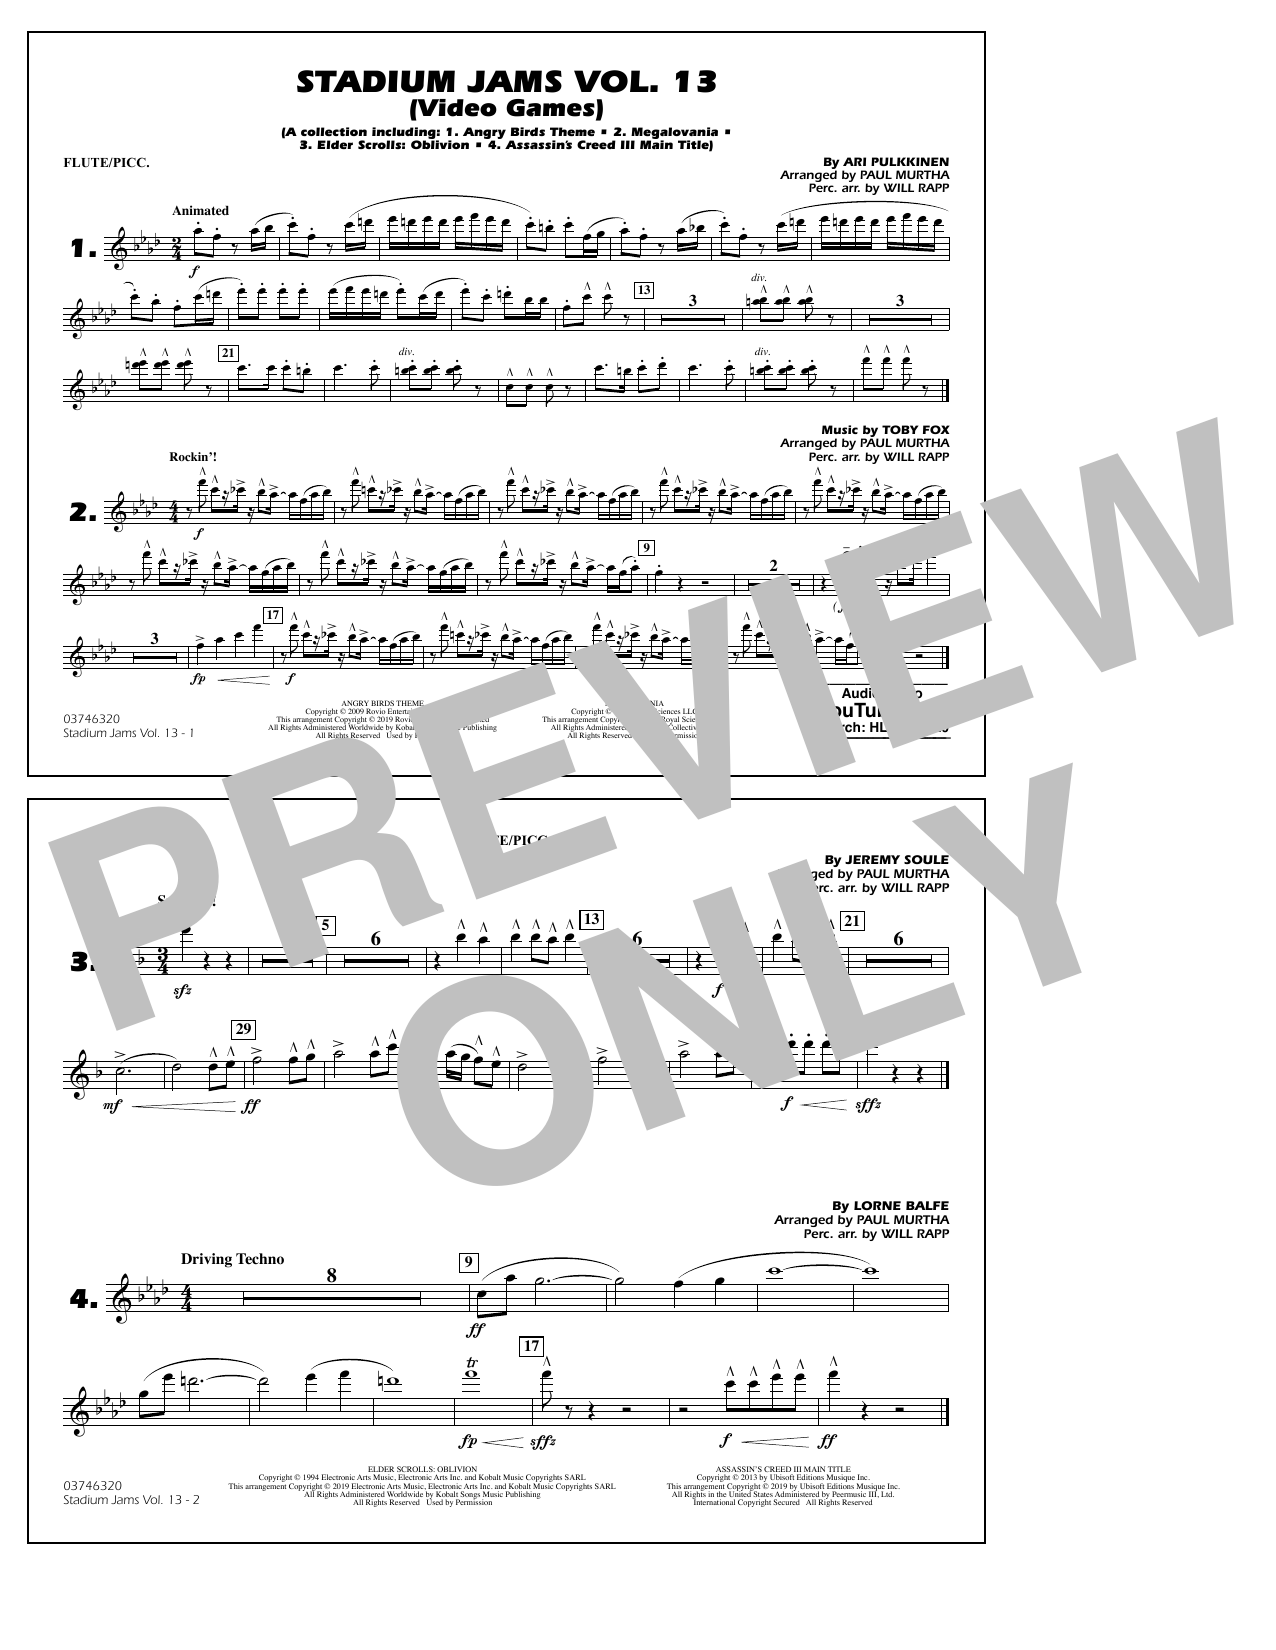 Paul Murtha & Will Rapp Stadium Jams Volume 13 (Video Games) - Flute/Piccolo sheet music notes and chords